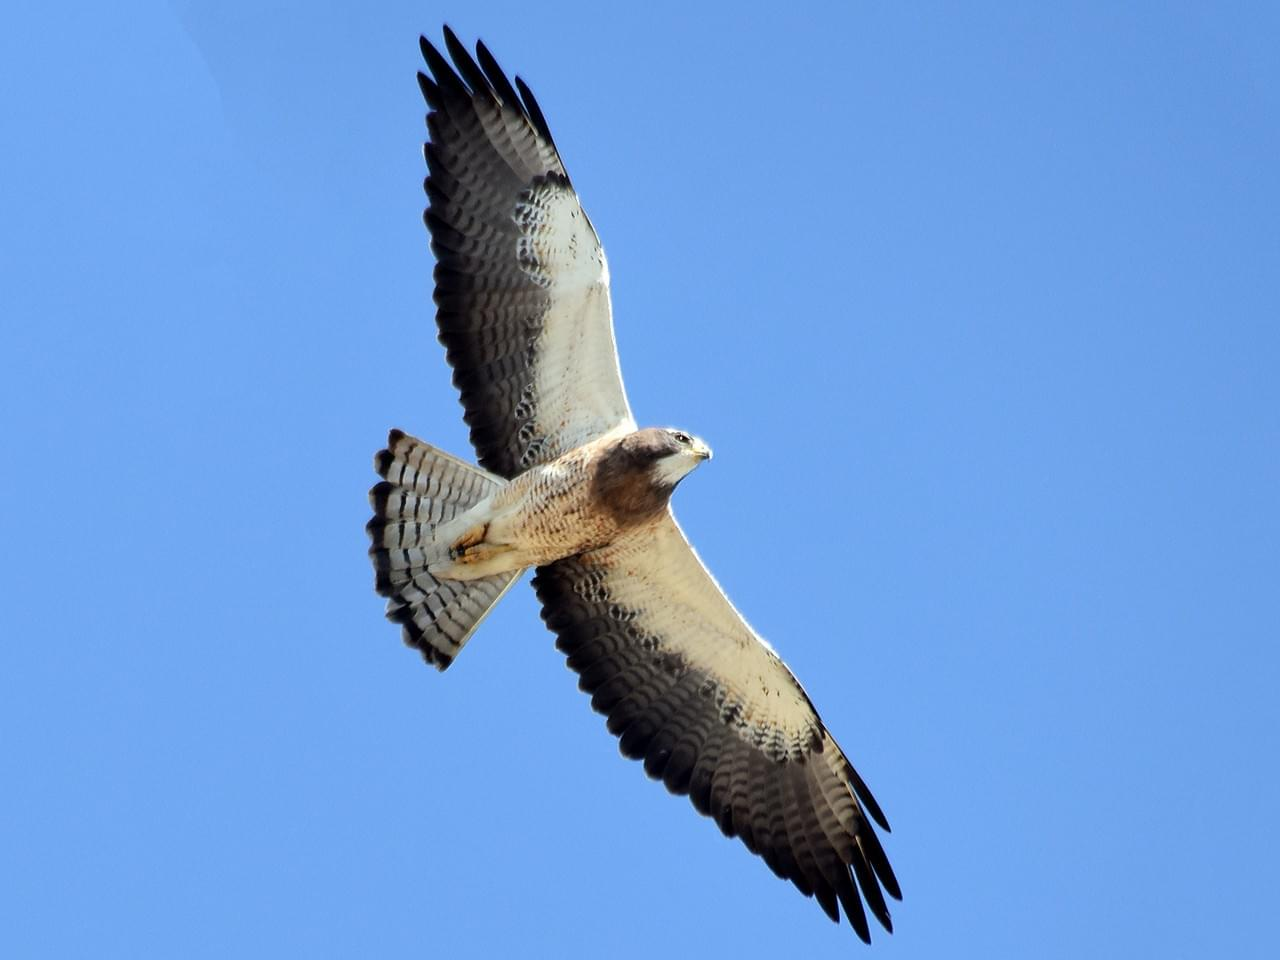 Soaring Swainson's hawk ( Buteo swainsoni ).  The dark bib and dark trailing edges of the wings are the telltale marks of a Swainson's.  Photo credit:  Steven Mlodinow via Macauley Library .